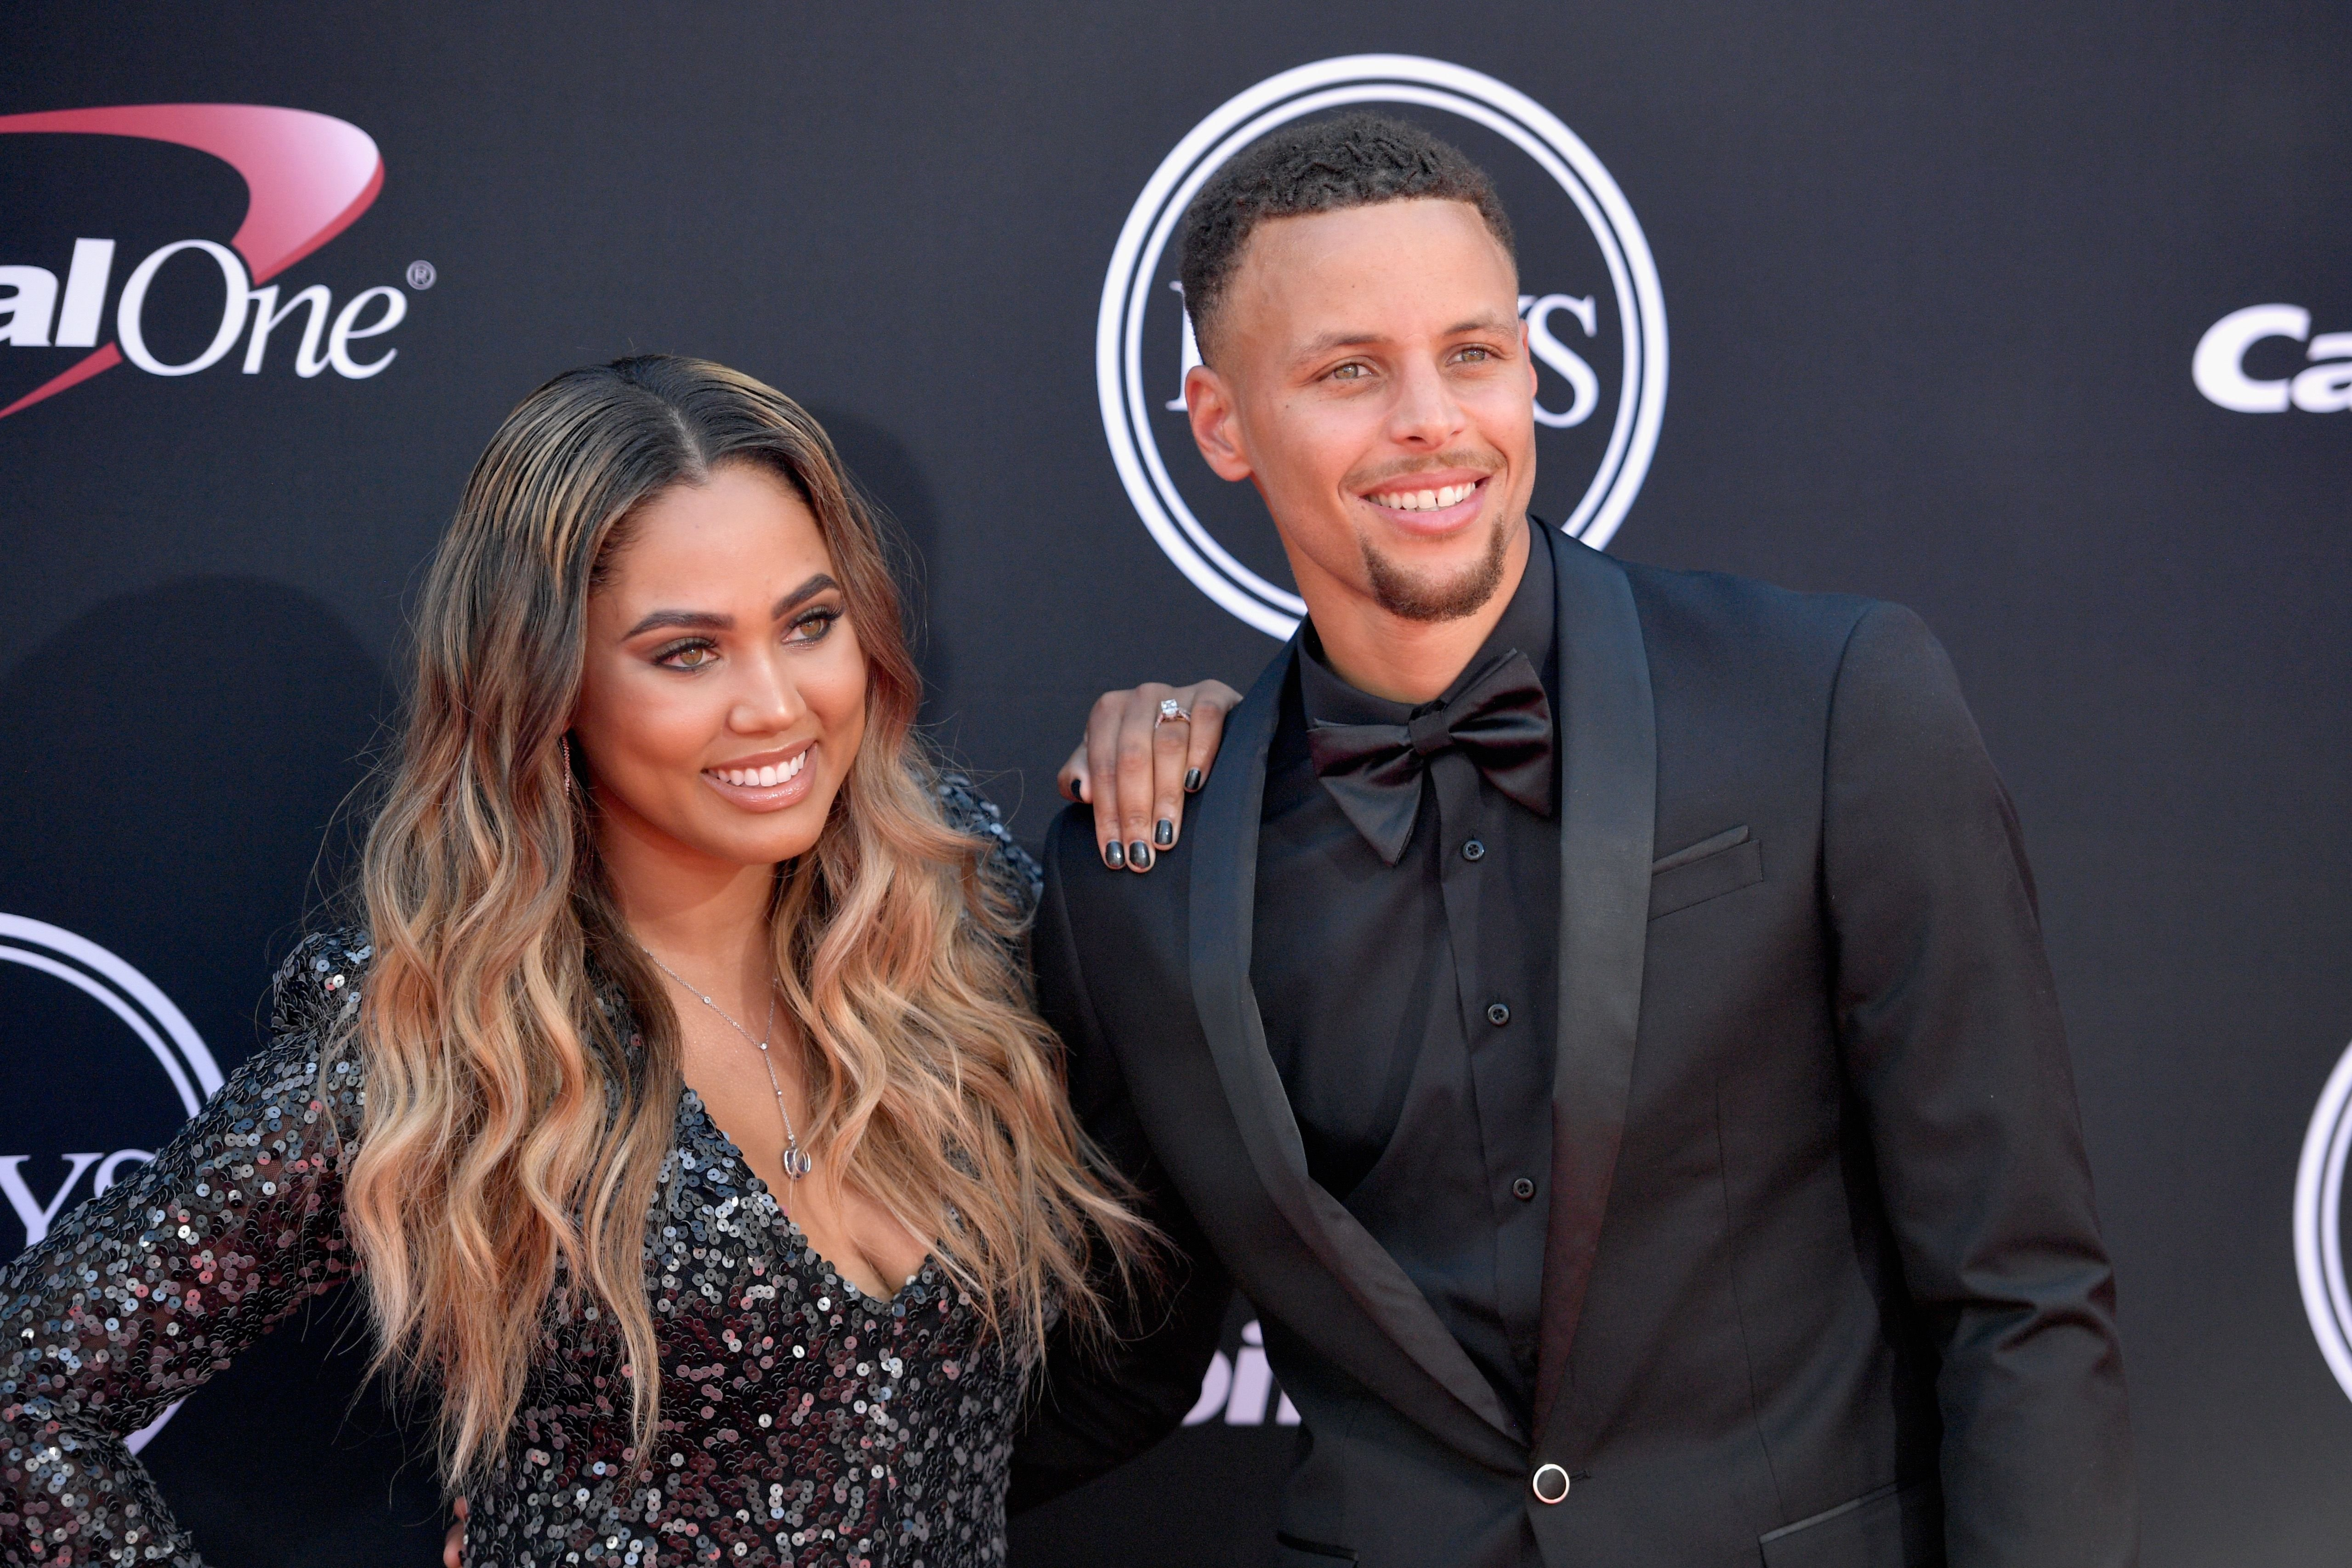 Steph and Ayesha Curry at the 2017 Excellence in Sports Performance Yearly Award in Los Angeles | Source: Getty Images